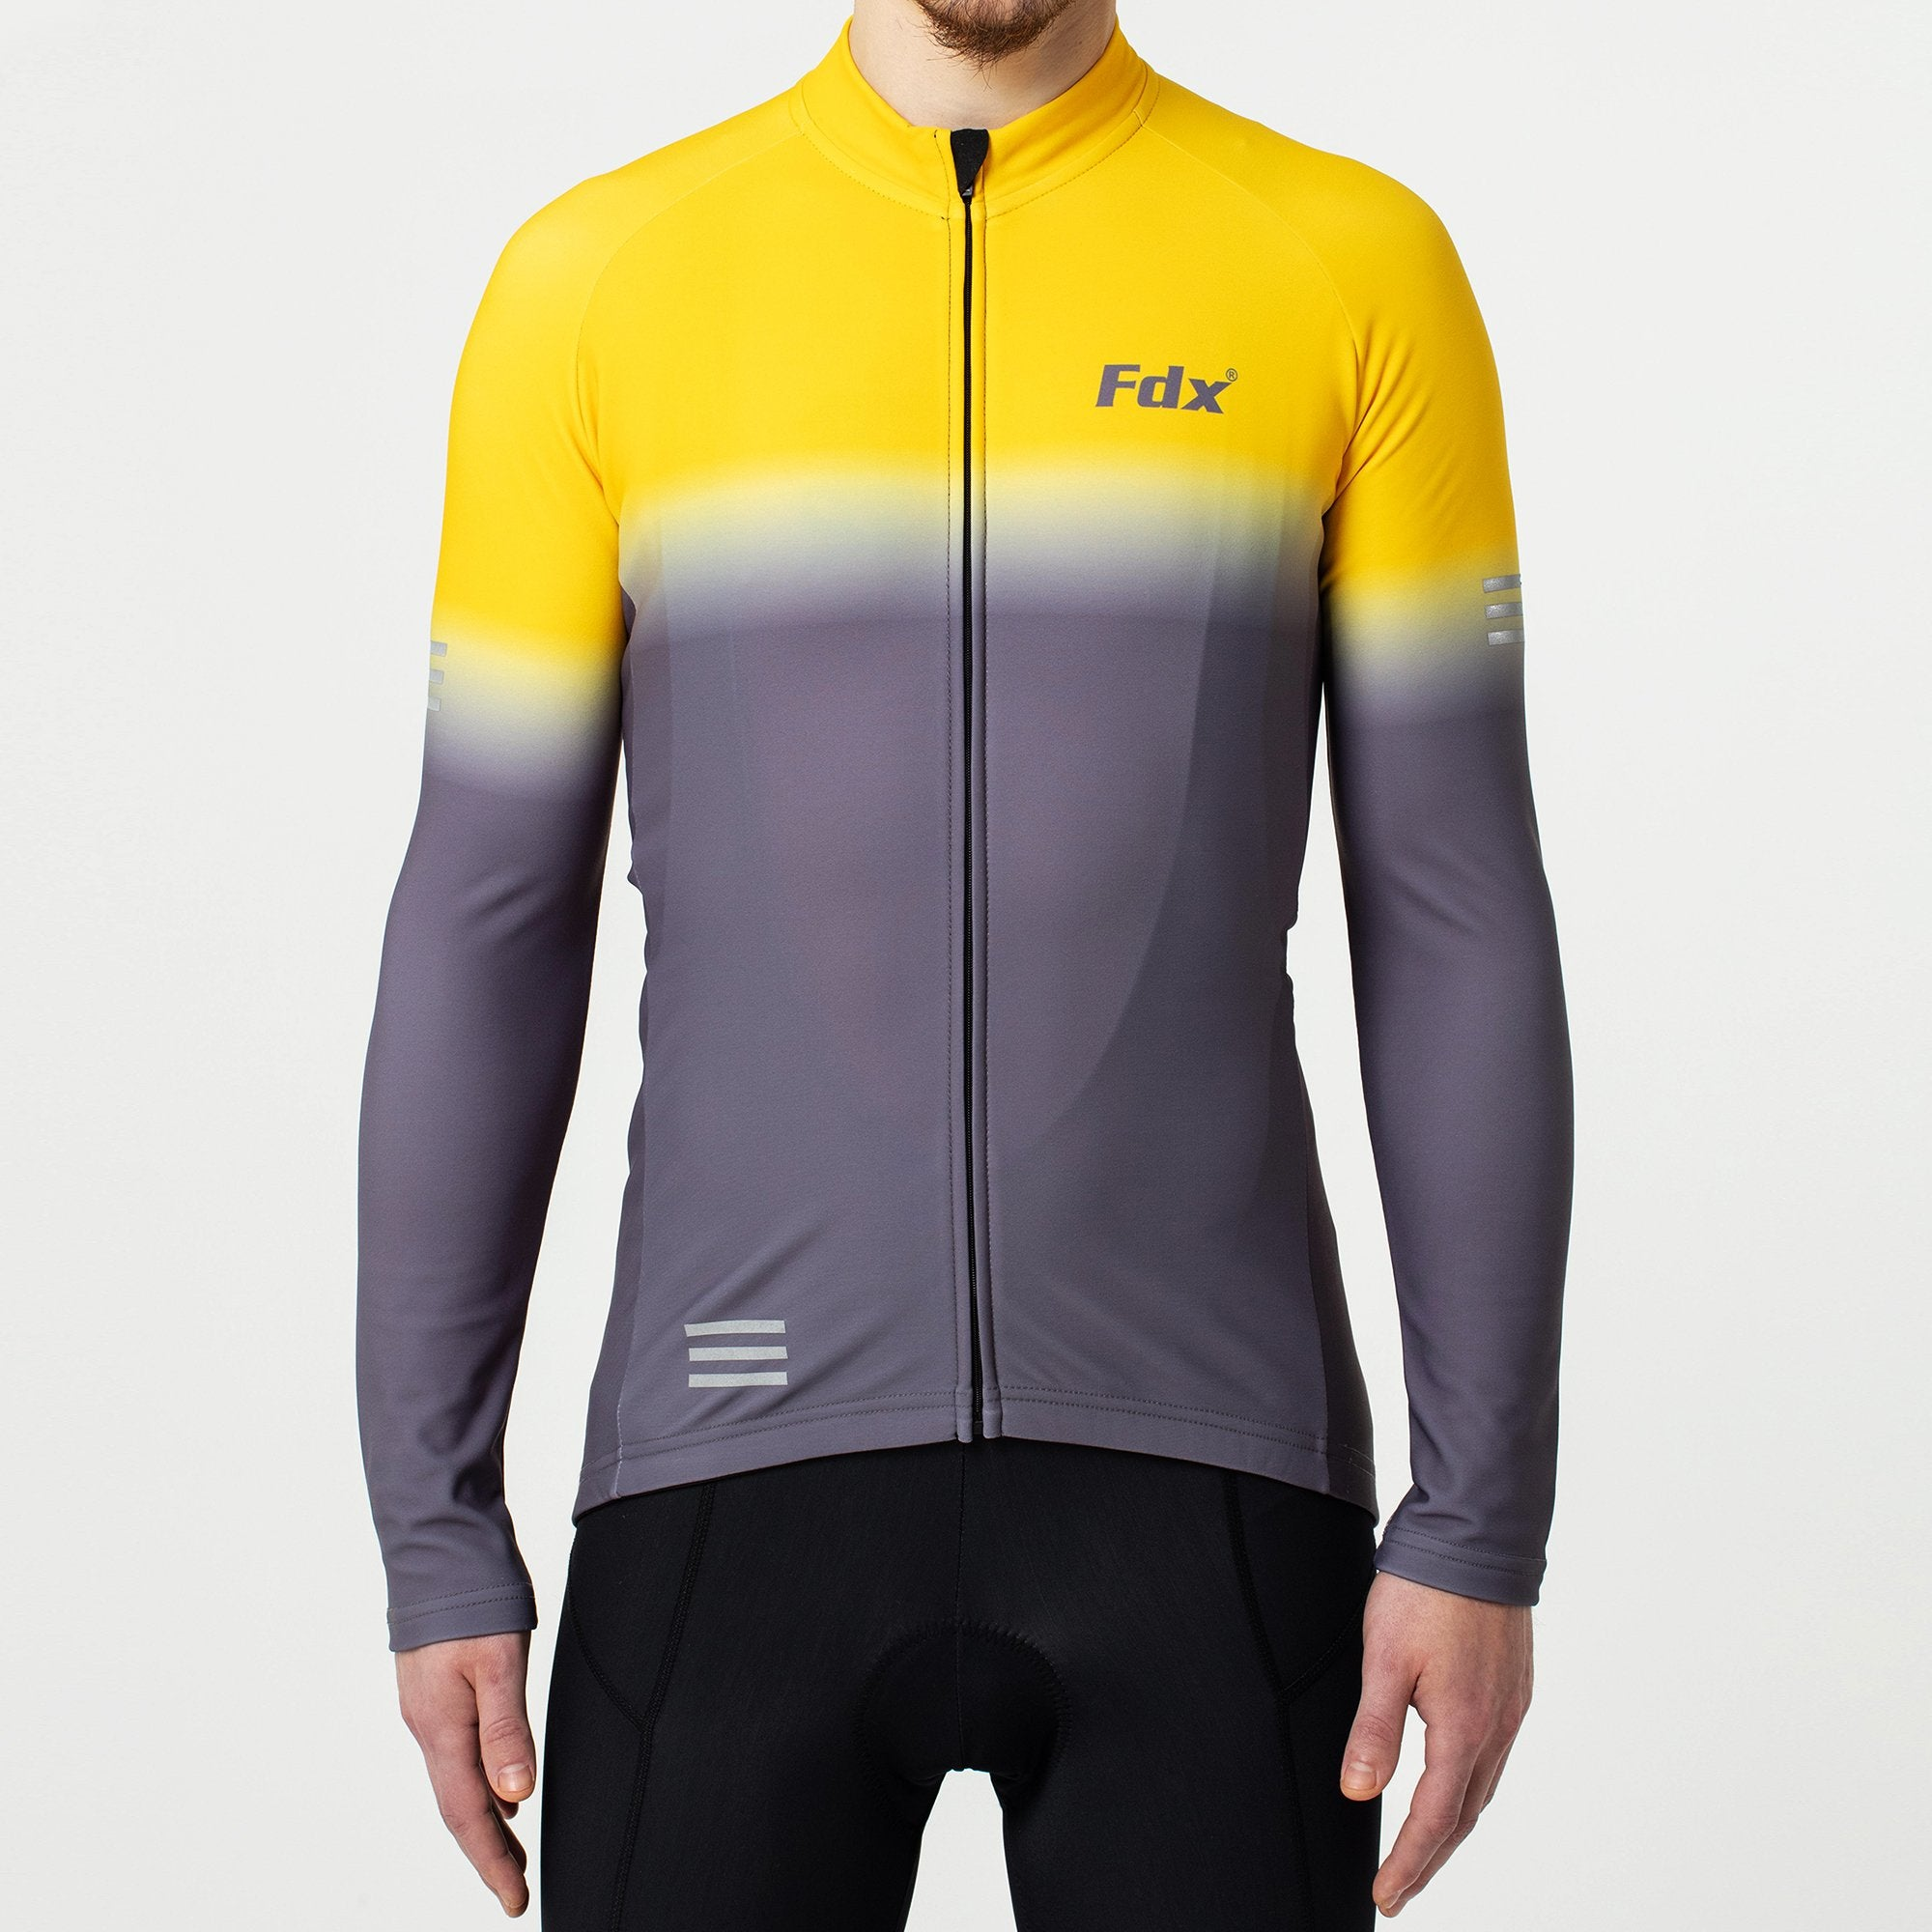 Fdx Men Duo Yellow & Grey Long Sleeve Thermal Cycling Jersey